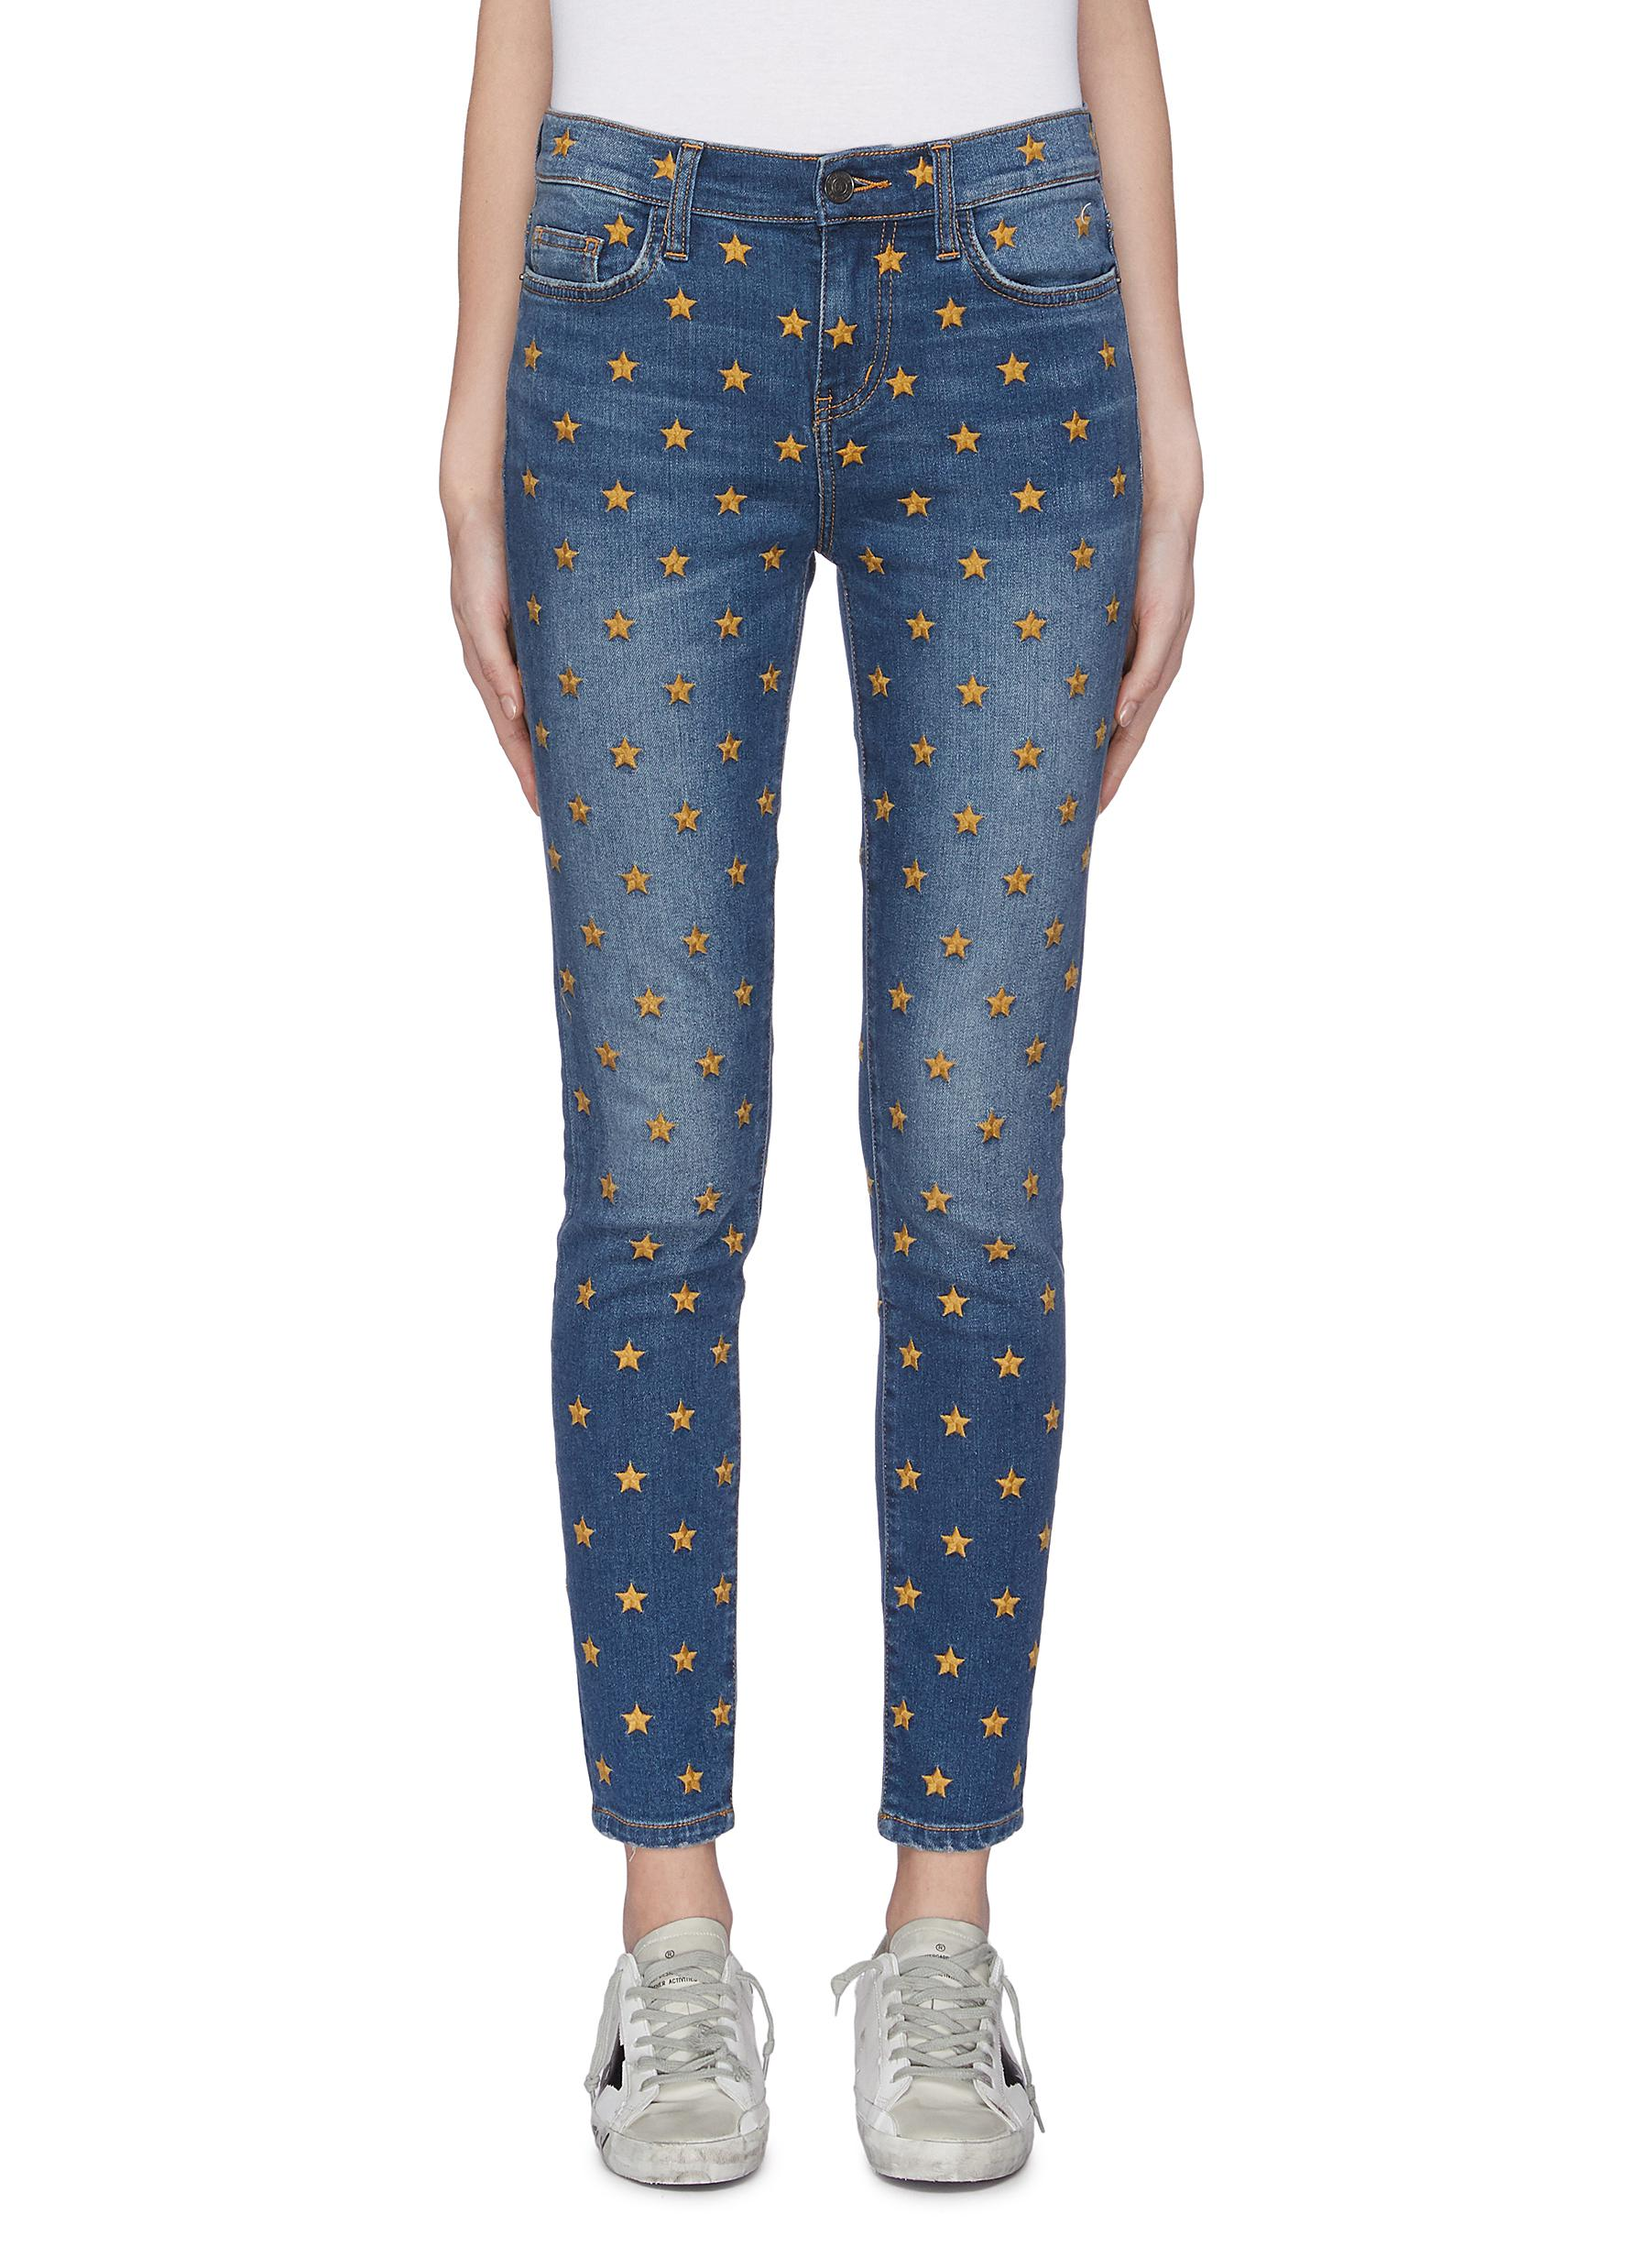 The Ankle Skinny Stiletto star embroidered jeans by Current/Elliott